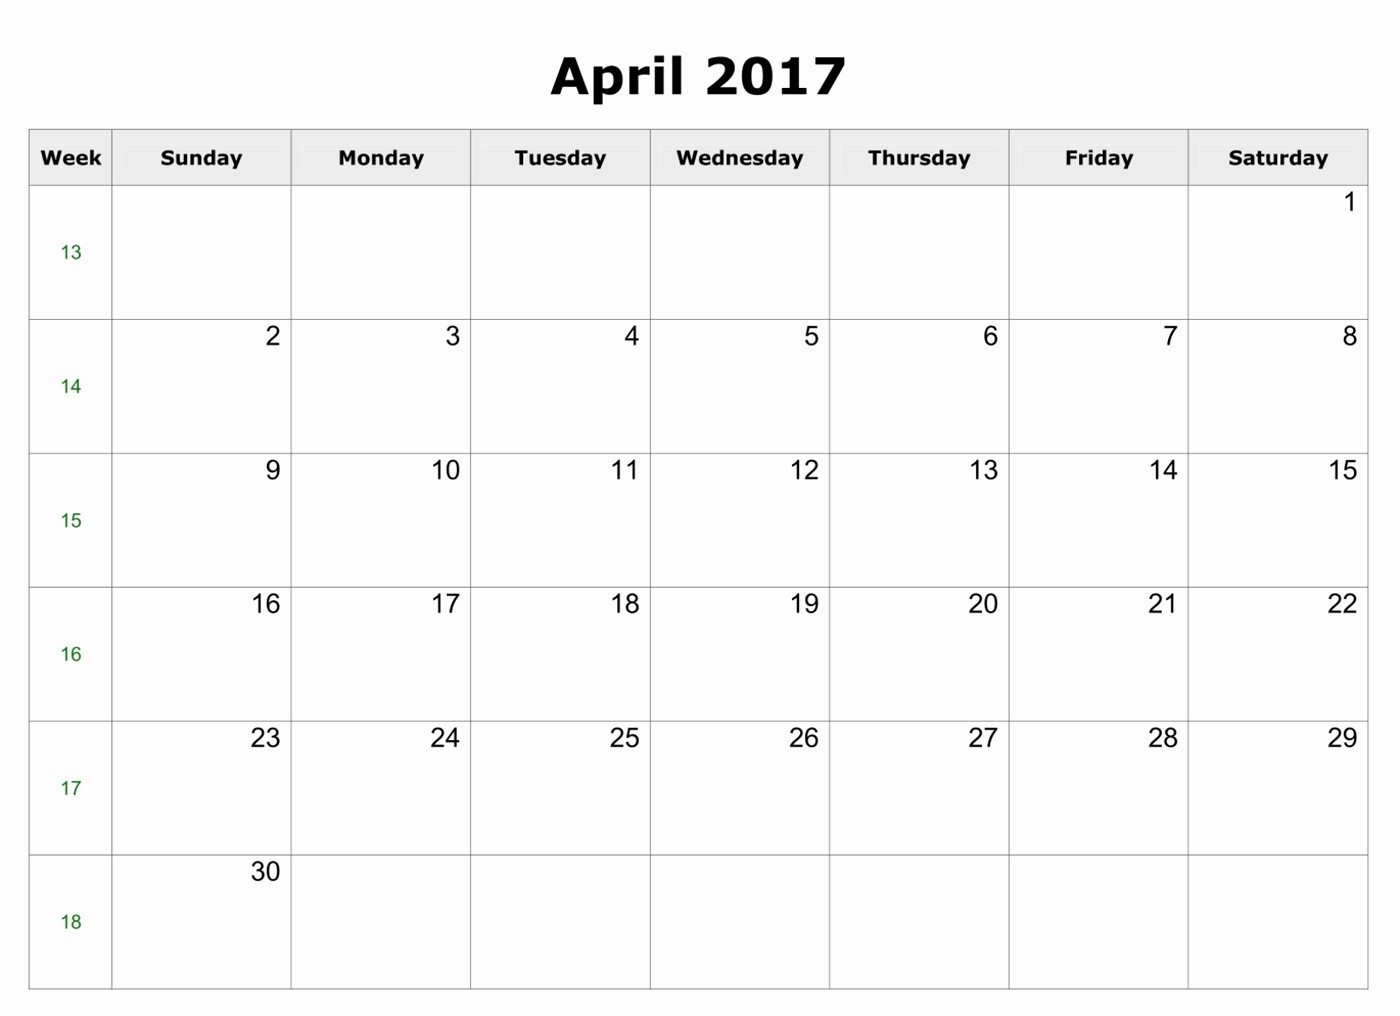 Excel Calendar 2017 with Holidays Luxury April 2017 Excel Calendar April2017 Excelcalendar